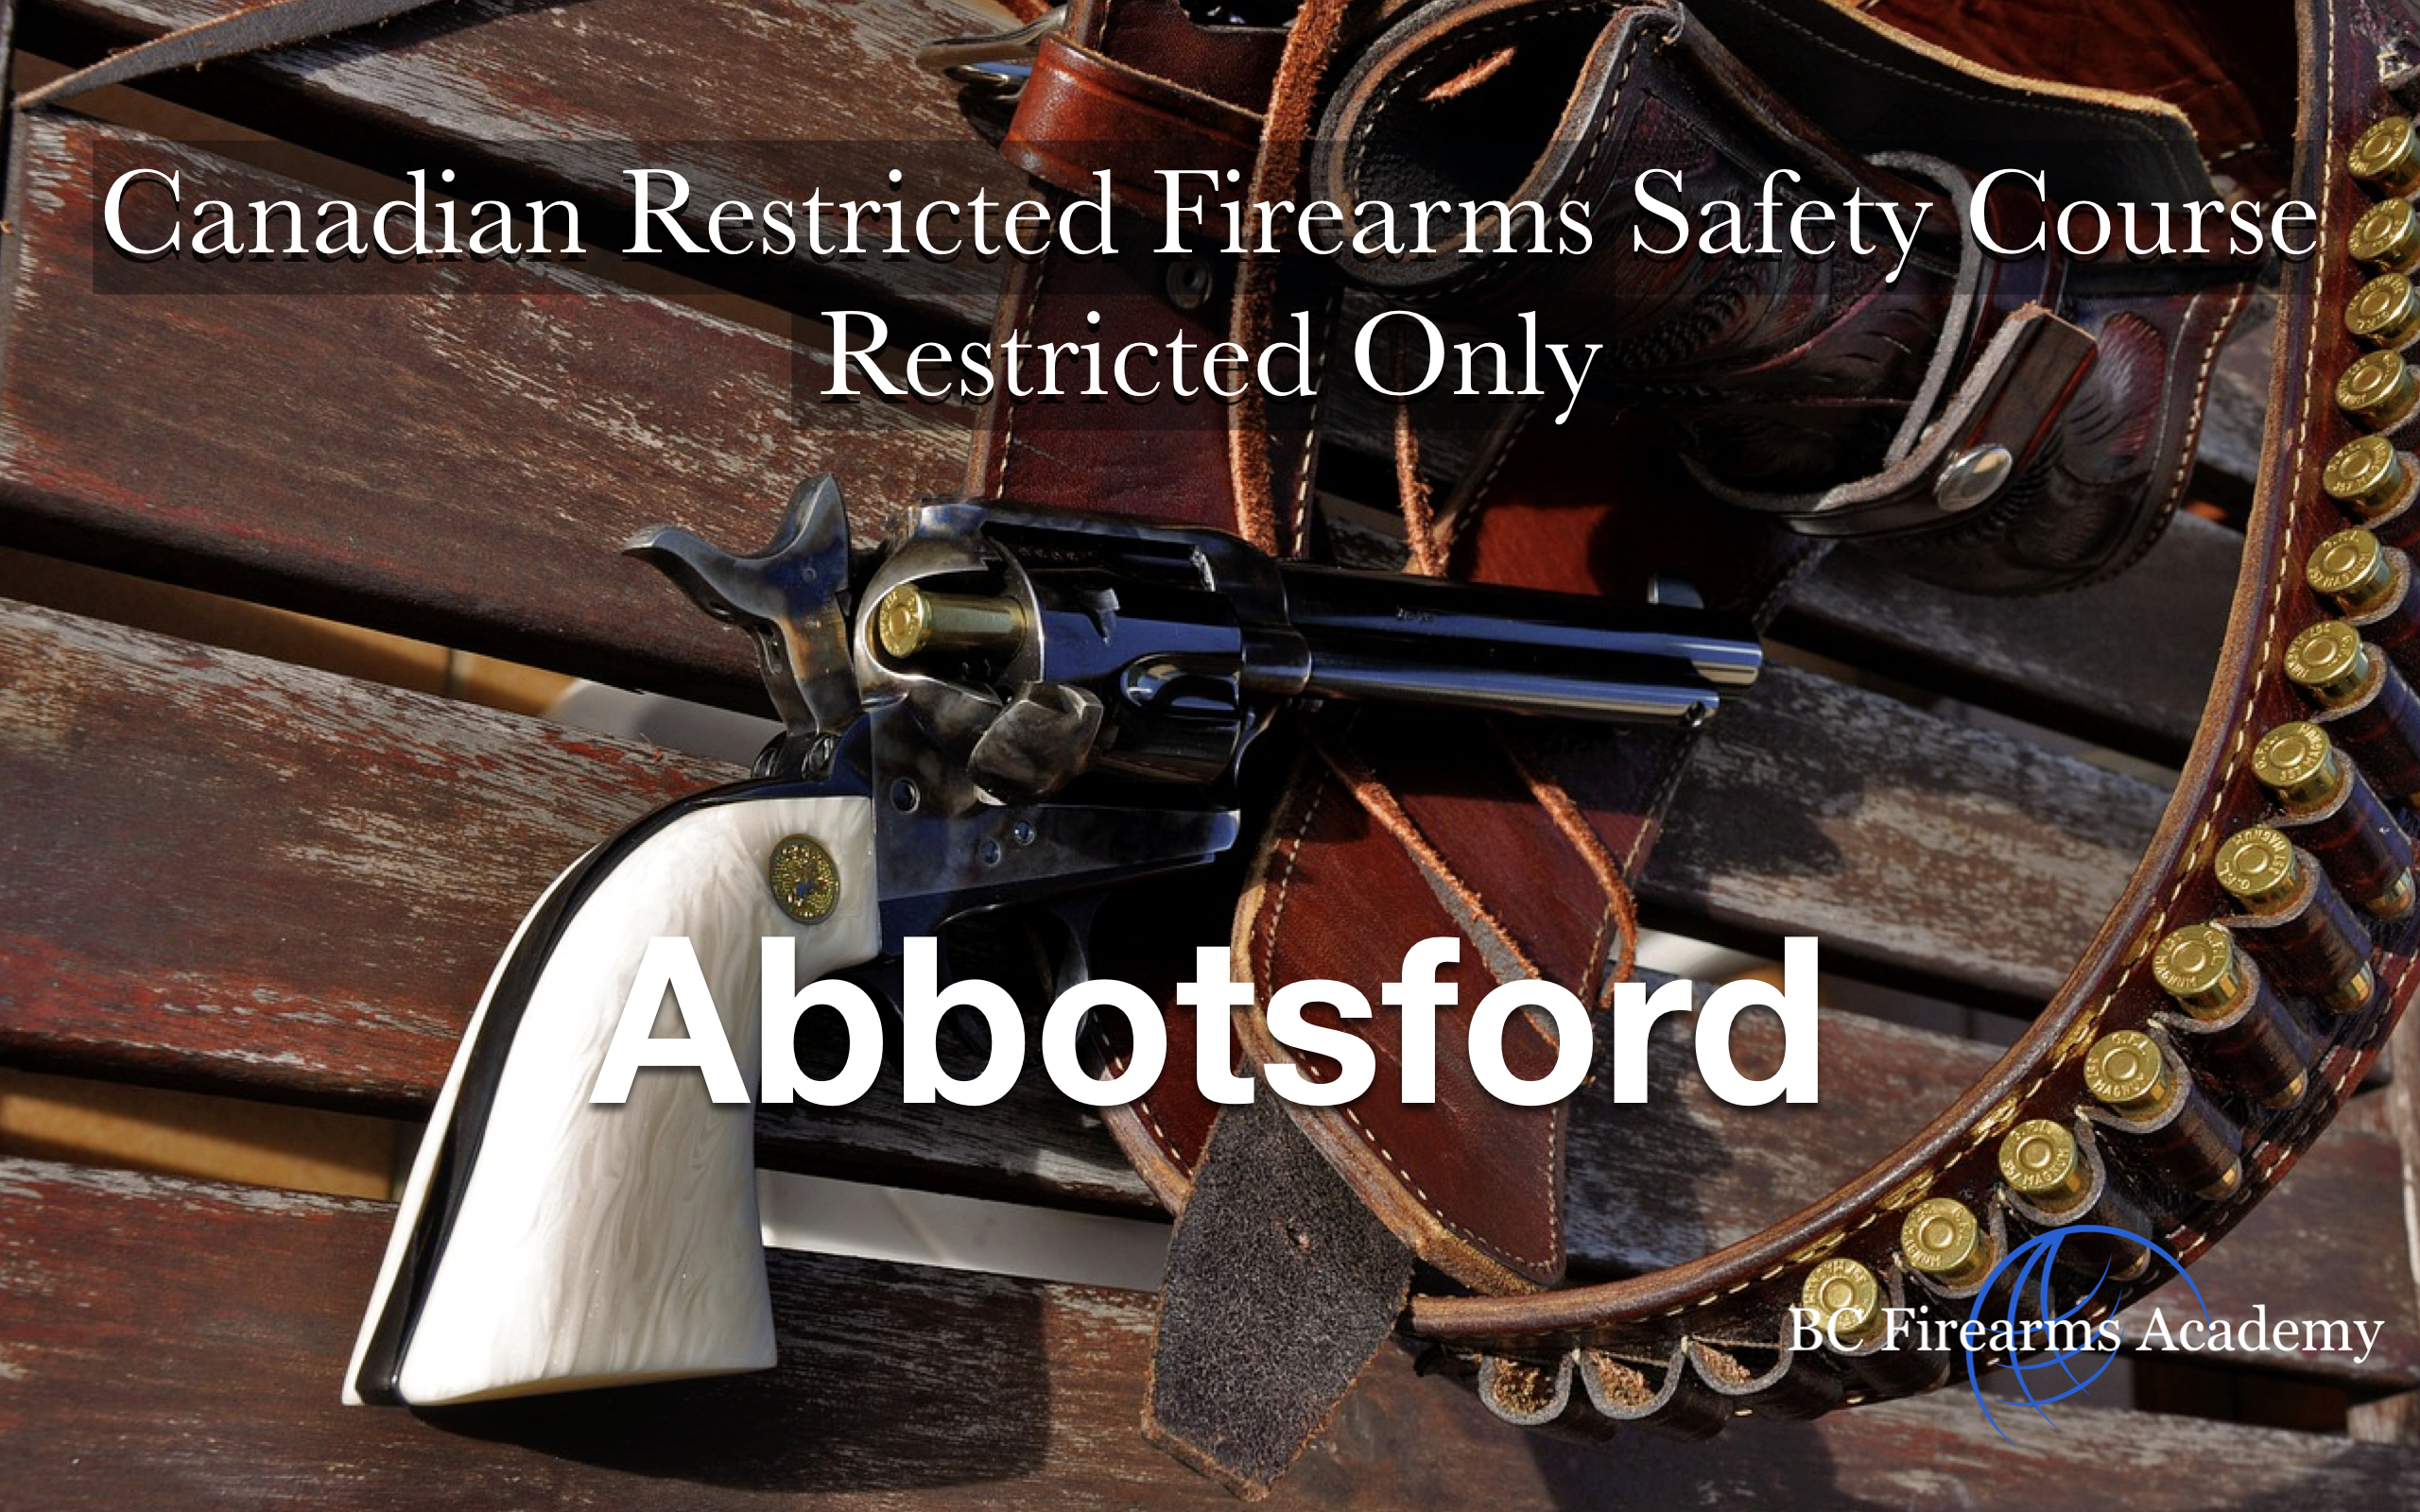 Canadian restricted firearms safety course (CRFSC) for restricted firearms